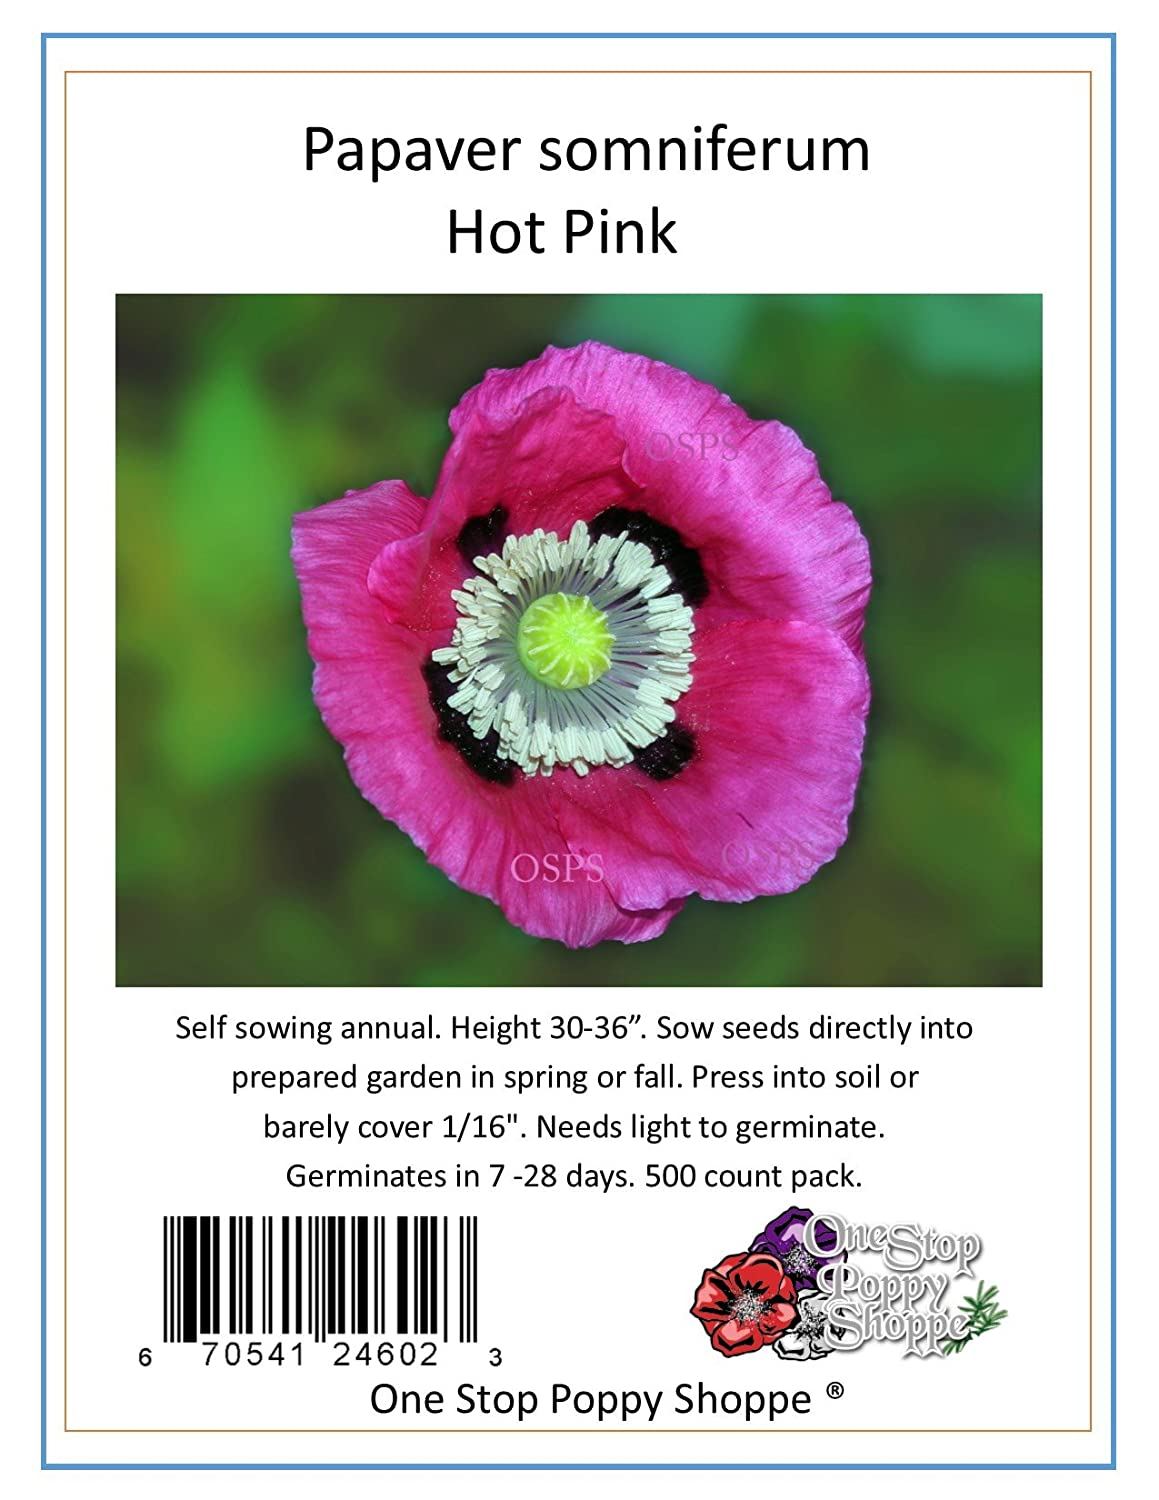 Amazon 500 Poppy Flower Seeds Papaver Somniferum Hot Pink